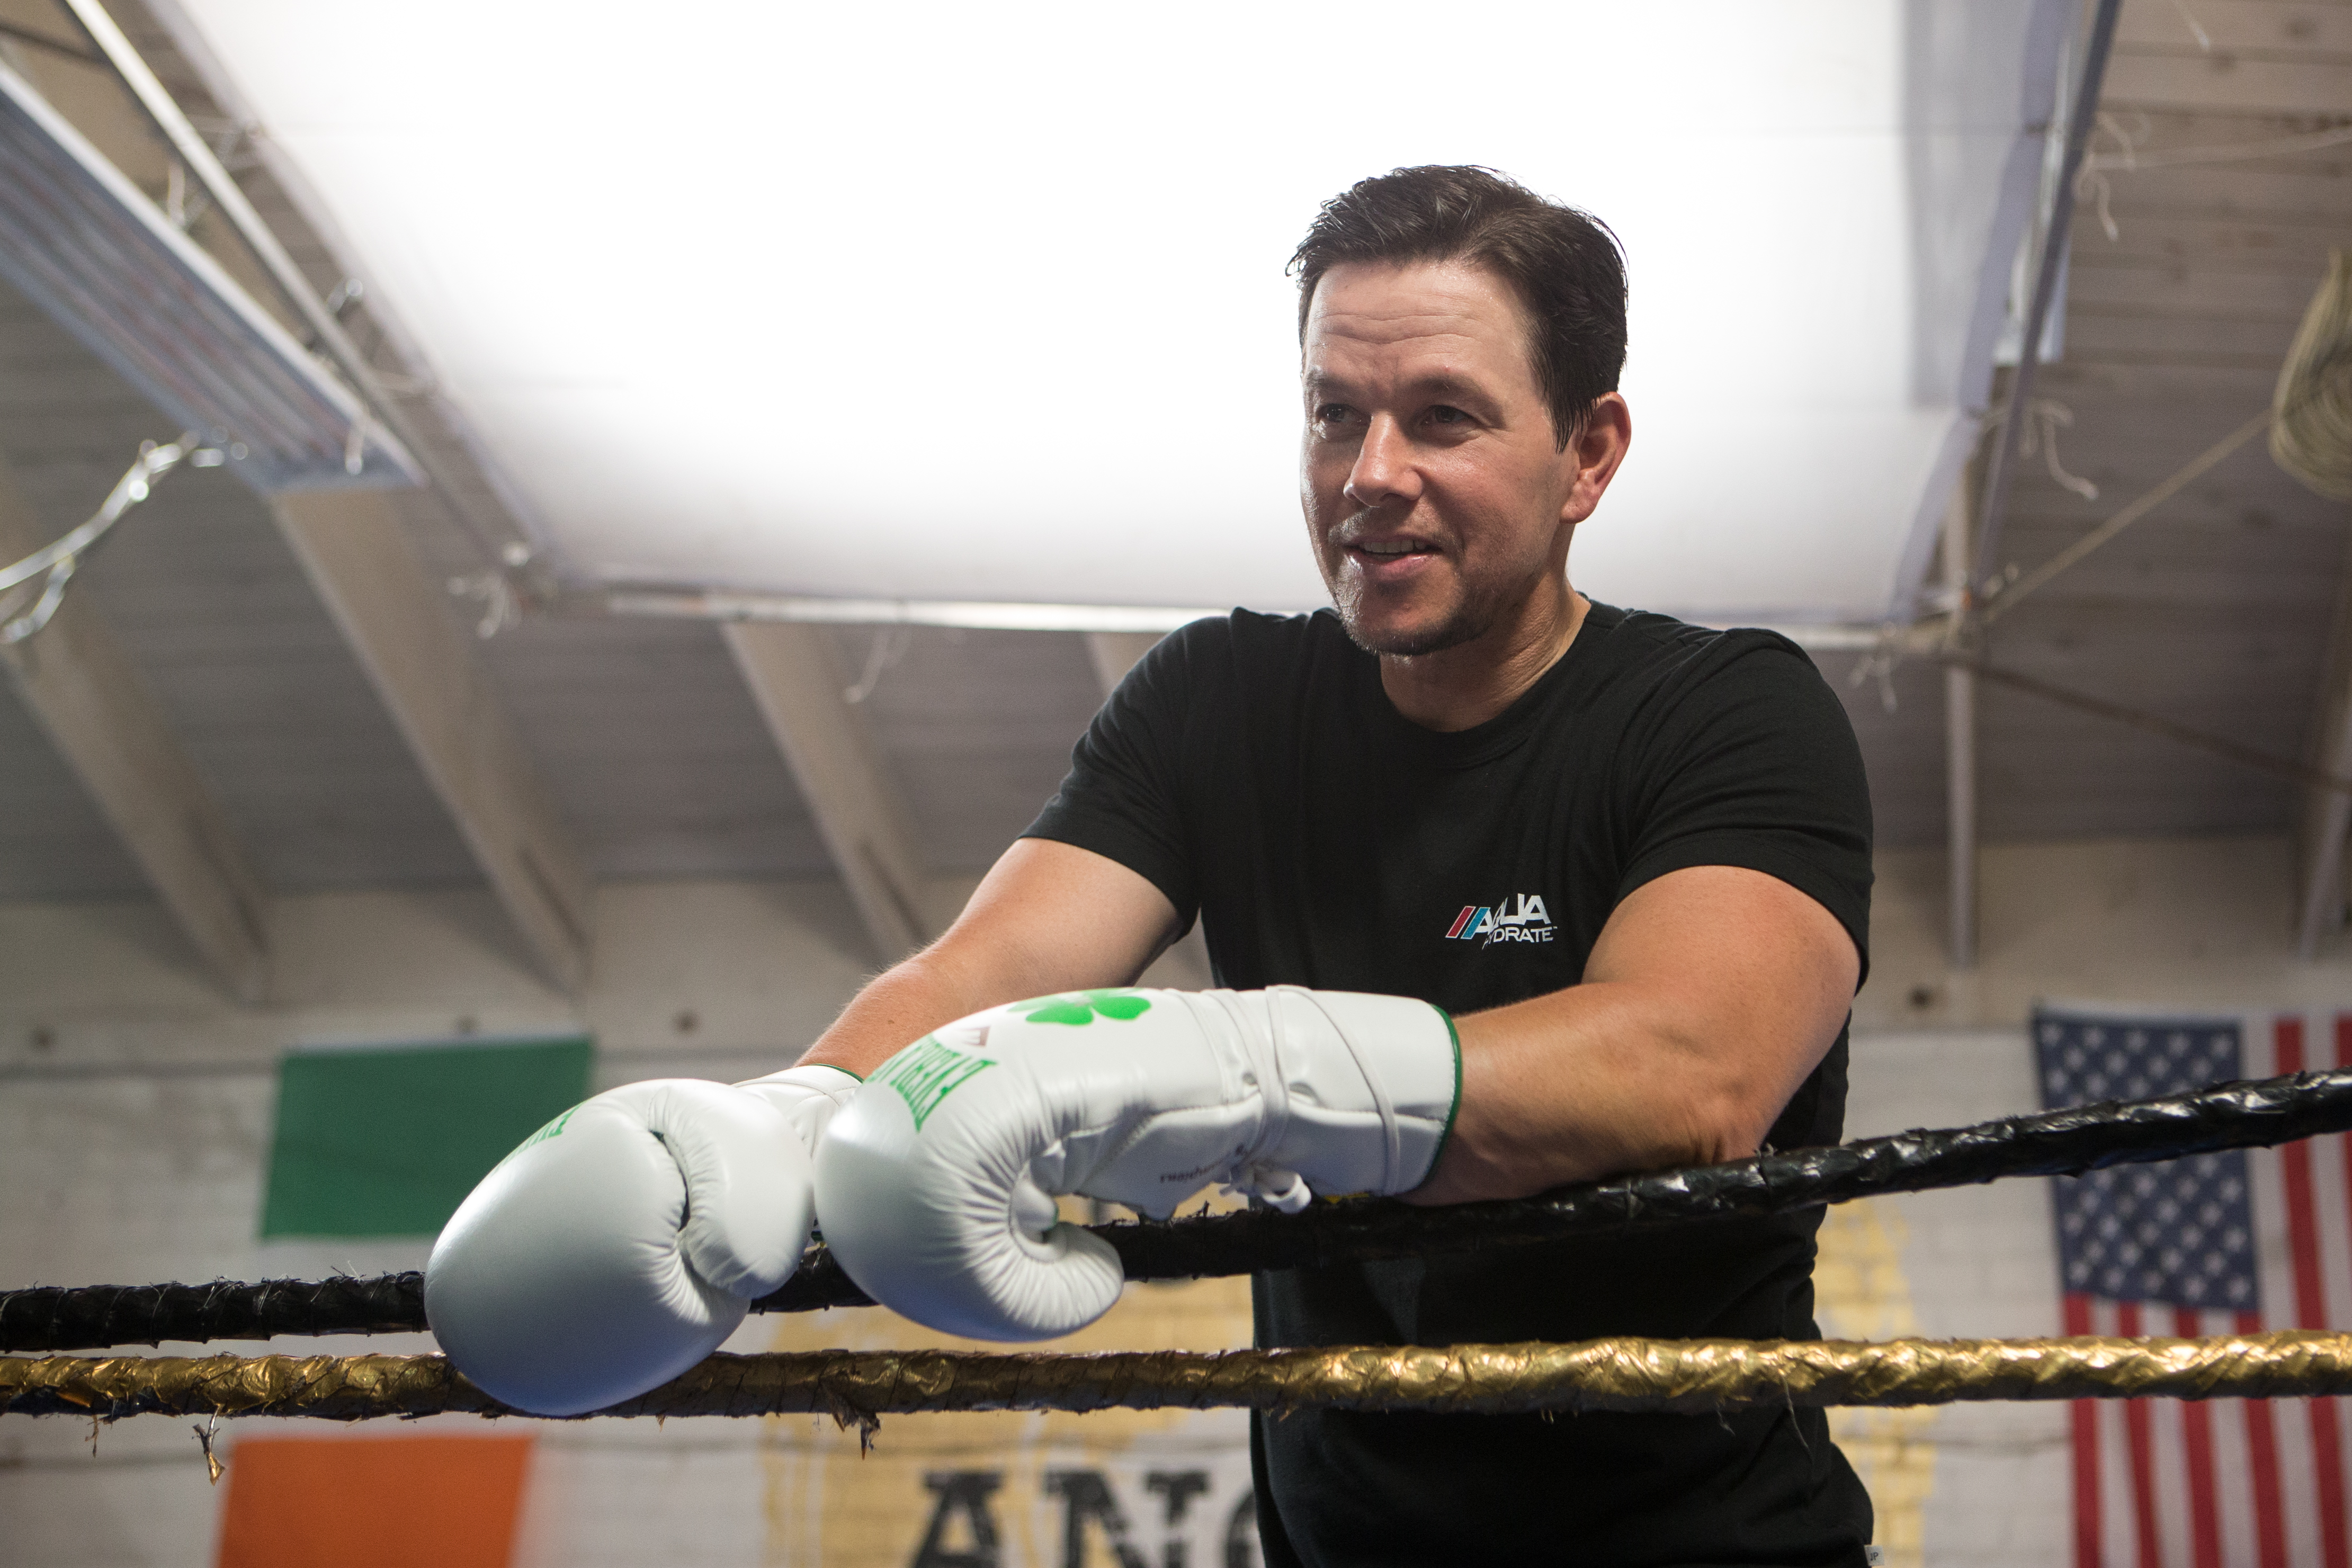 Dazn App Diddy_vs_mark Wahlberg_036 | Round By Round Boxing